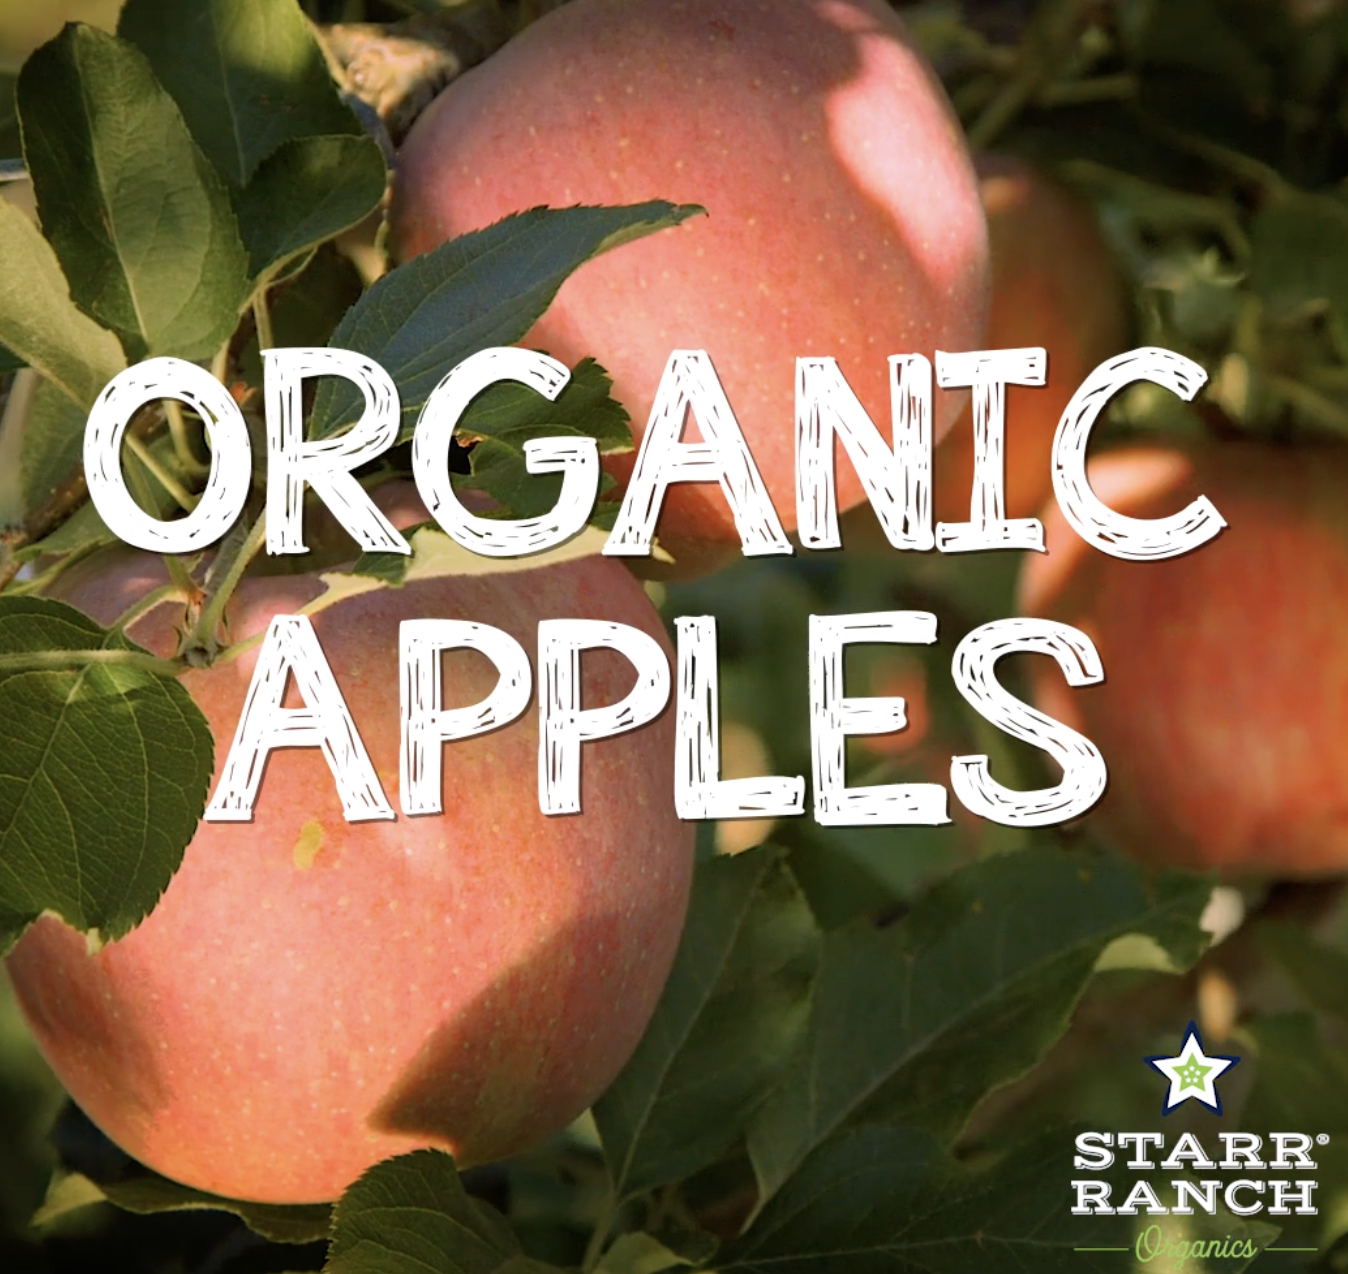 Starr Ranch Growers: Organic Apples